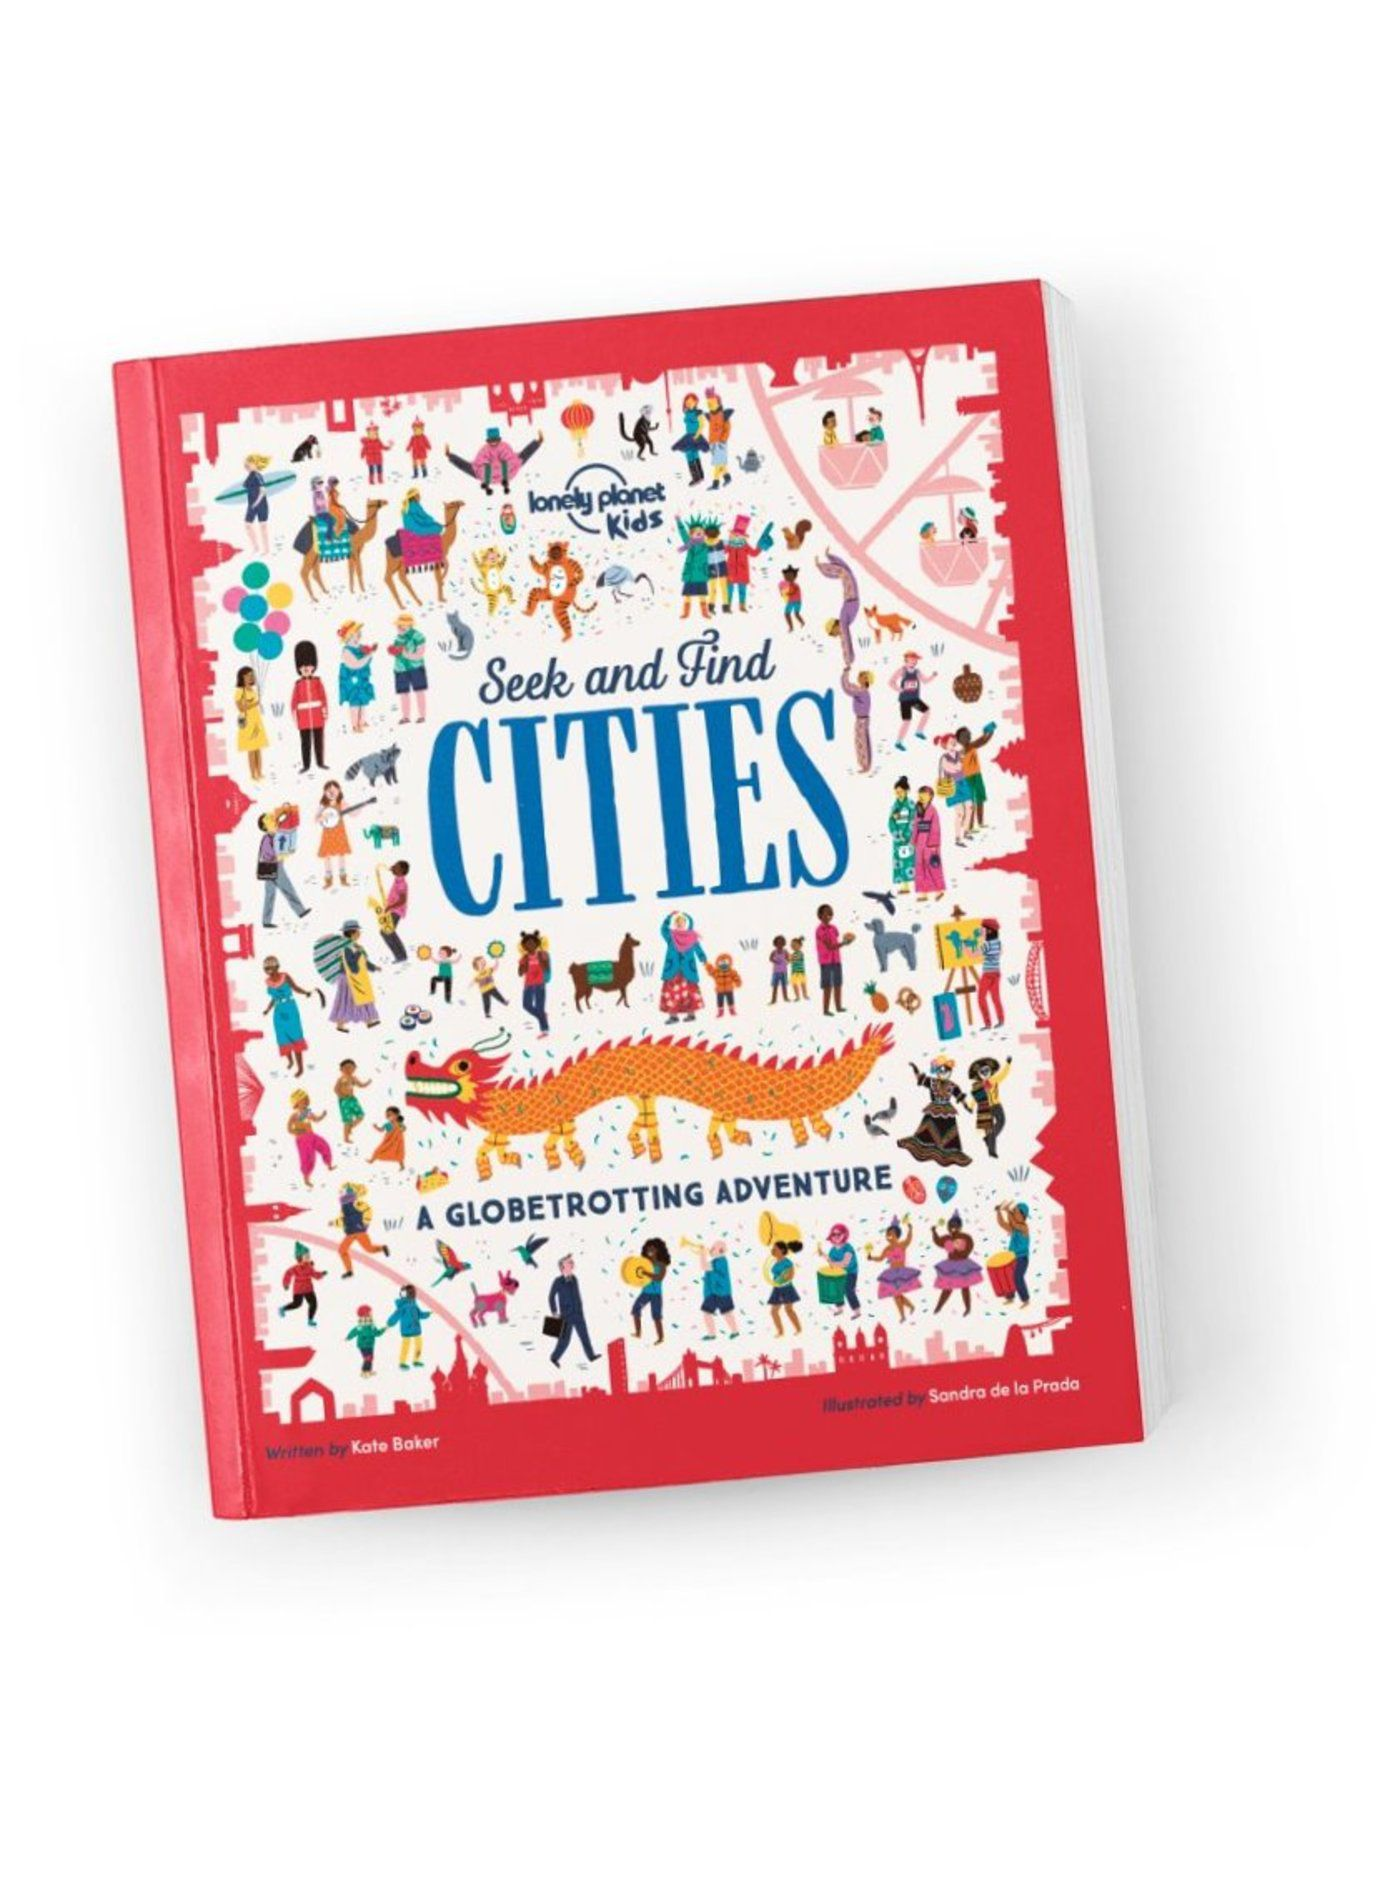 Seek and Find Cities (North & South America edition)